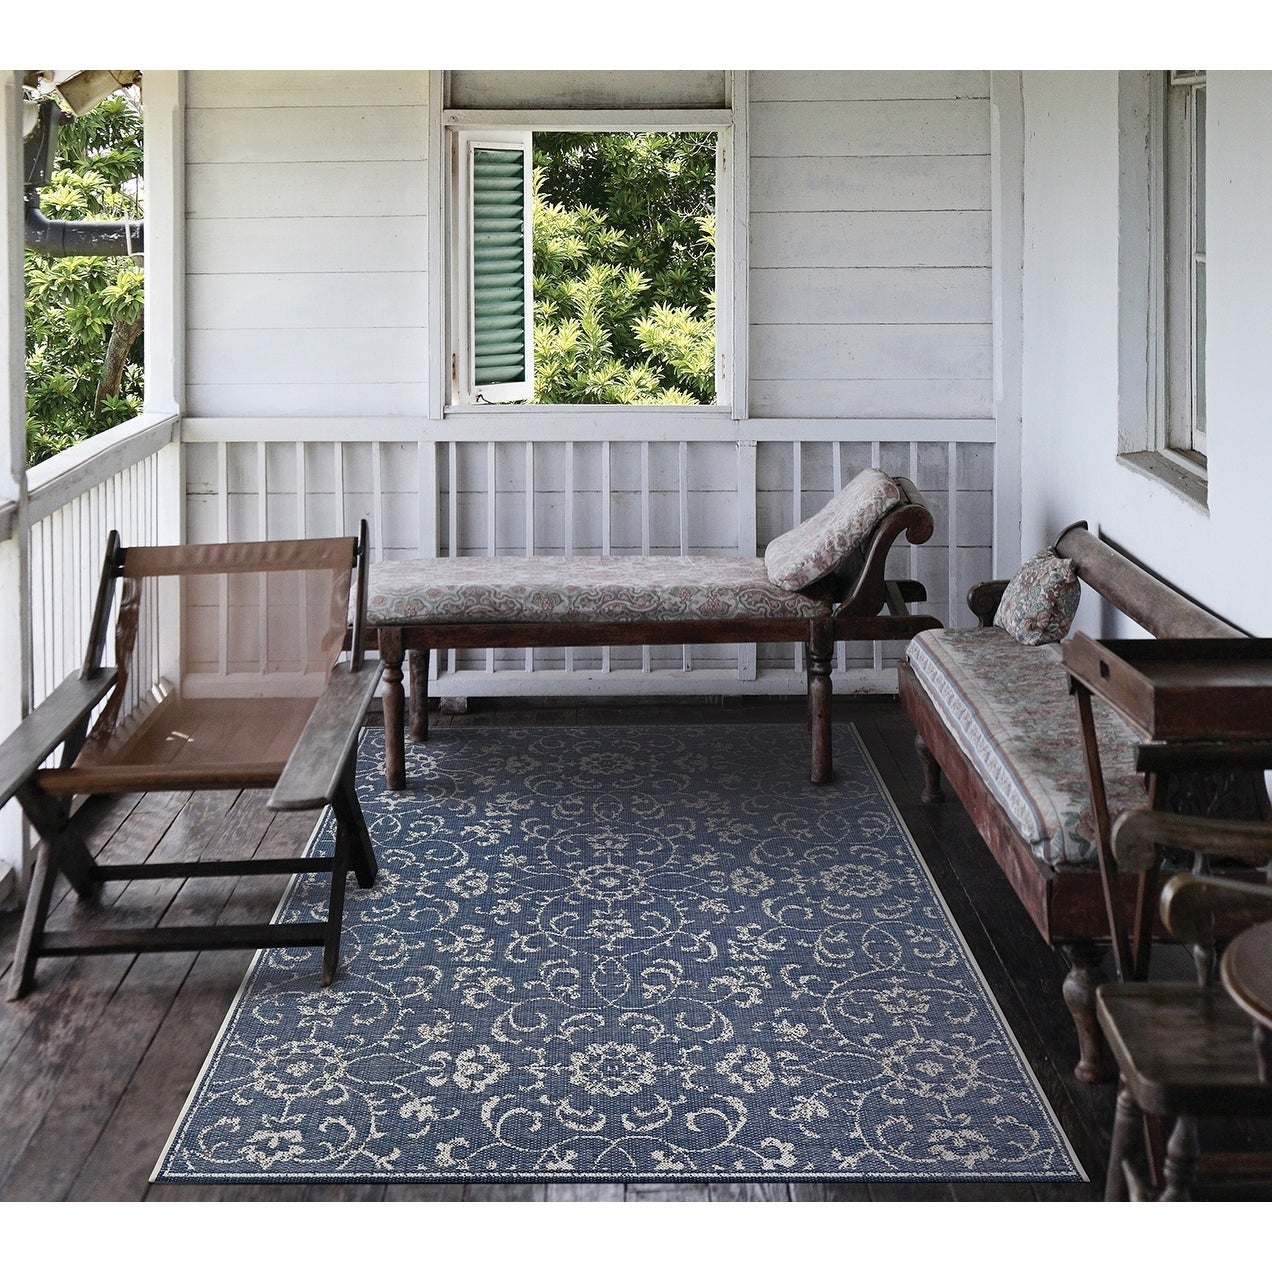 Carriage House Morning Glory Navy-Ivory Indoor/Outdoor Area Rug - 2 x 37 (2 x 37 - Navy/Ivory)